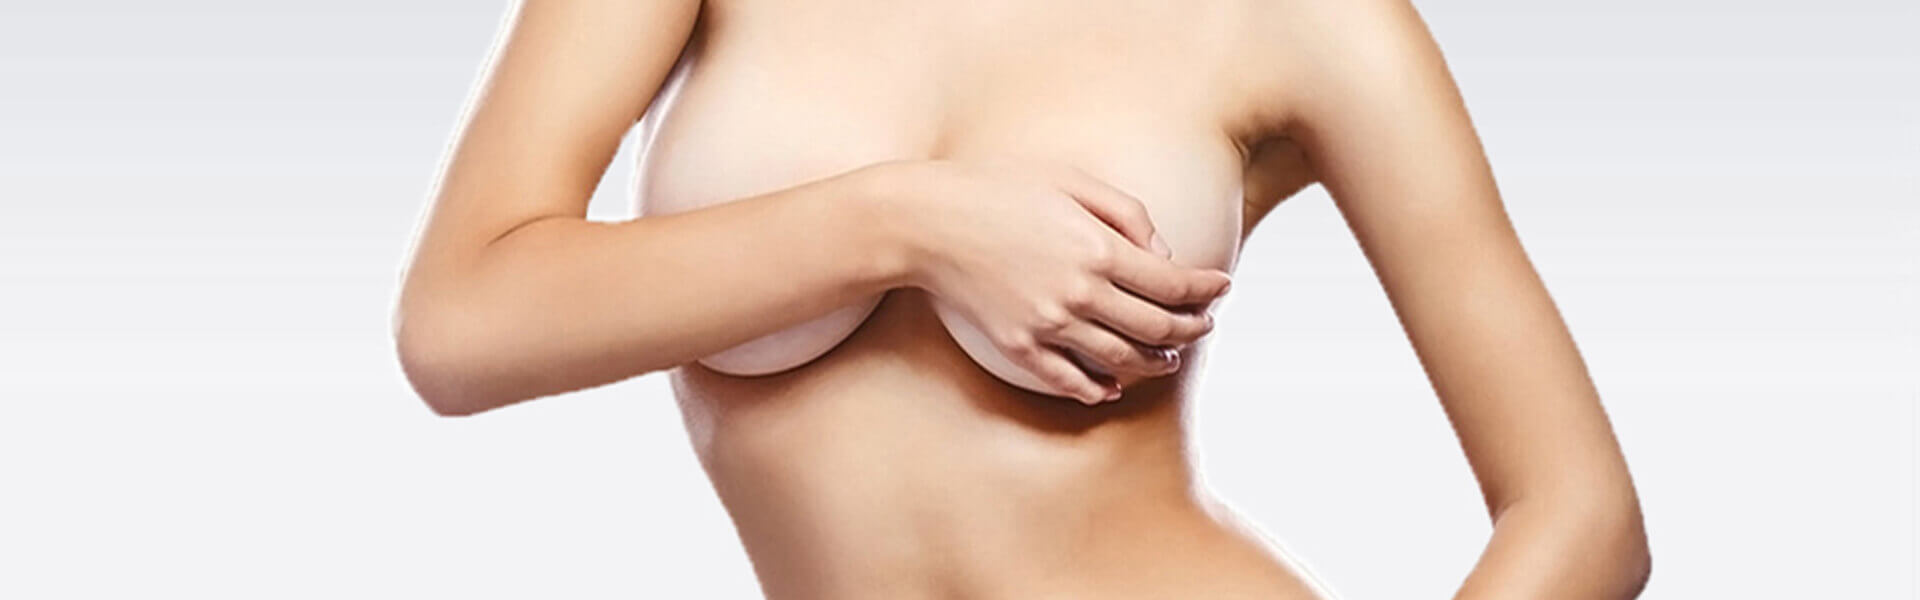 Picture a woman with a hand over a breast depicting plastic surgery in San José, Costa Rica.